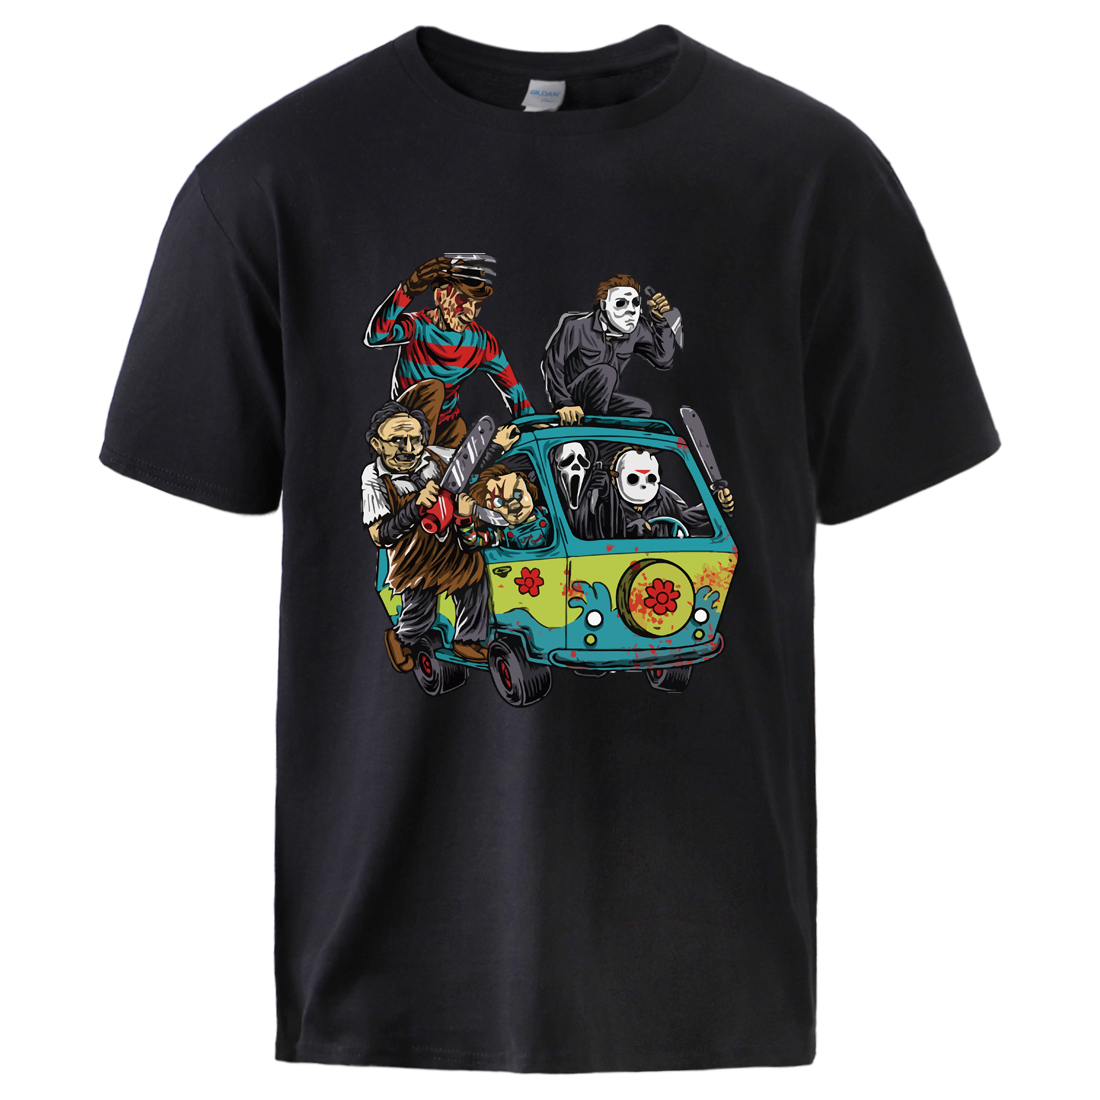 Maniac Park Horror Movie Man Summer Tshirts 2020 Male 100% Cotton T Shirt Top Theme Park Jason Clown Saw Halloween Sportswear